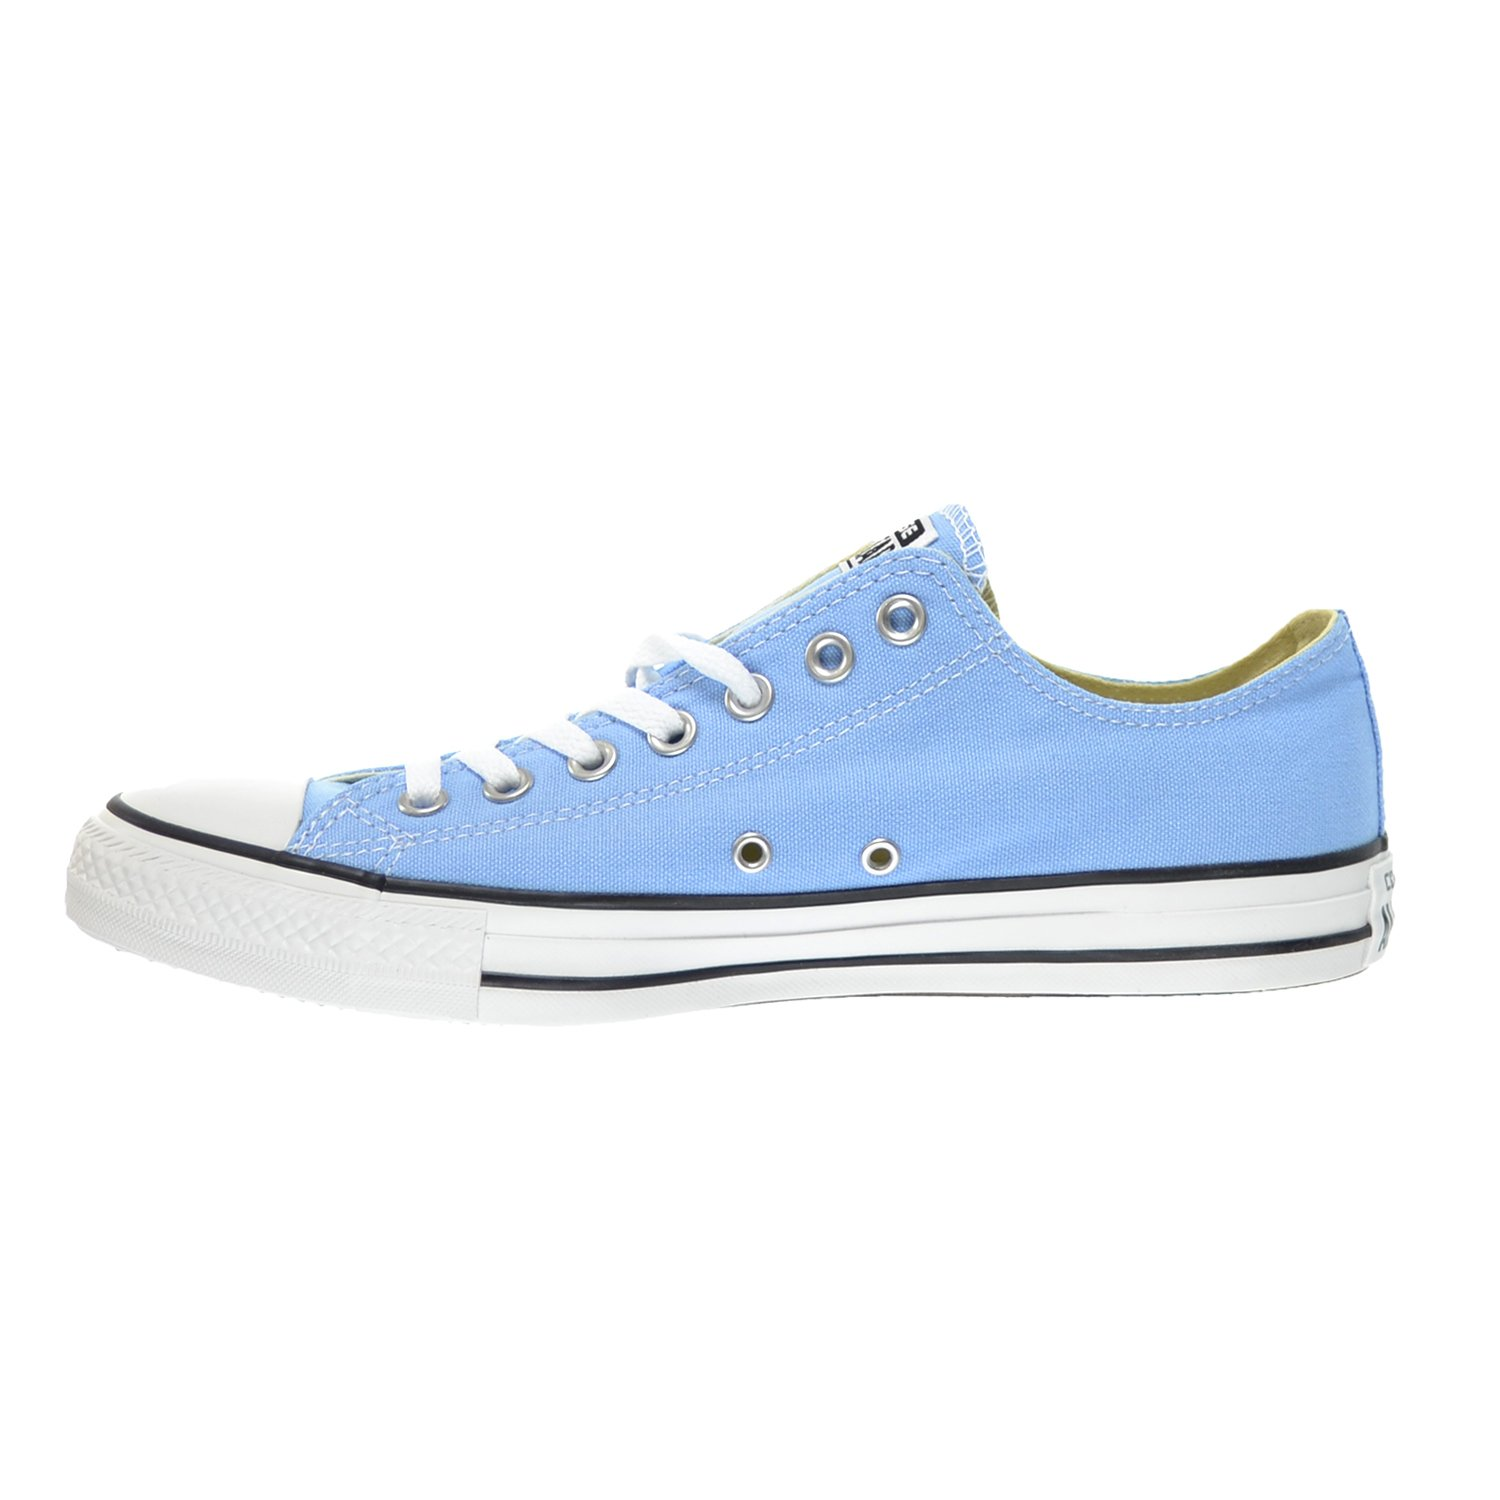 b42c210ea7f9 Converse All Star Chuck Taylor OX Unisex Shoes Blue Sky White 149524f (7  D(M) US)  Amazon.co.uk  Shoes   Bags